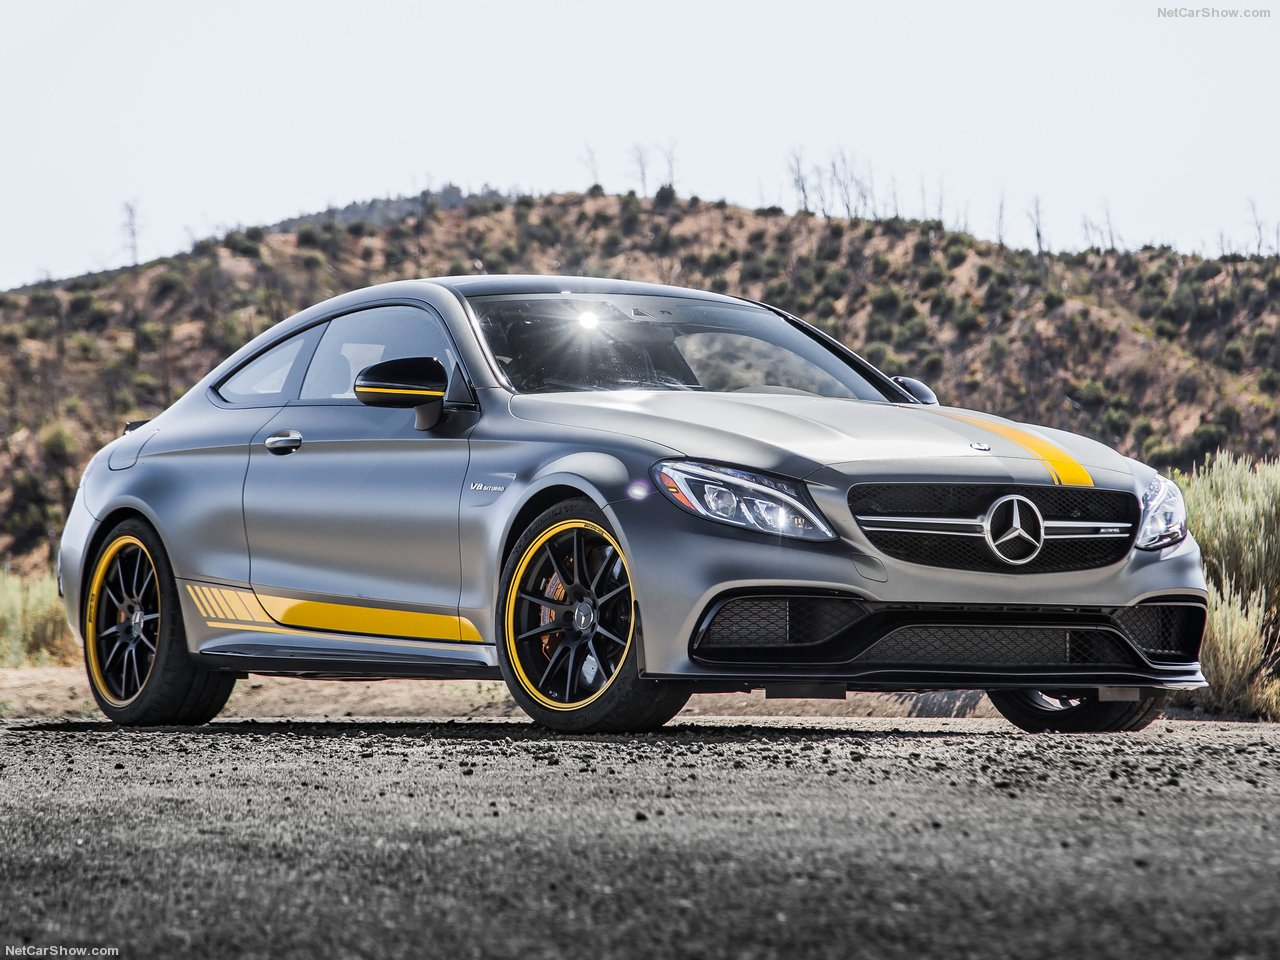 mercedes-benz-c63_amg_coupe_edition_1-2017-1280-01